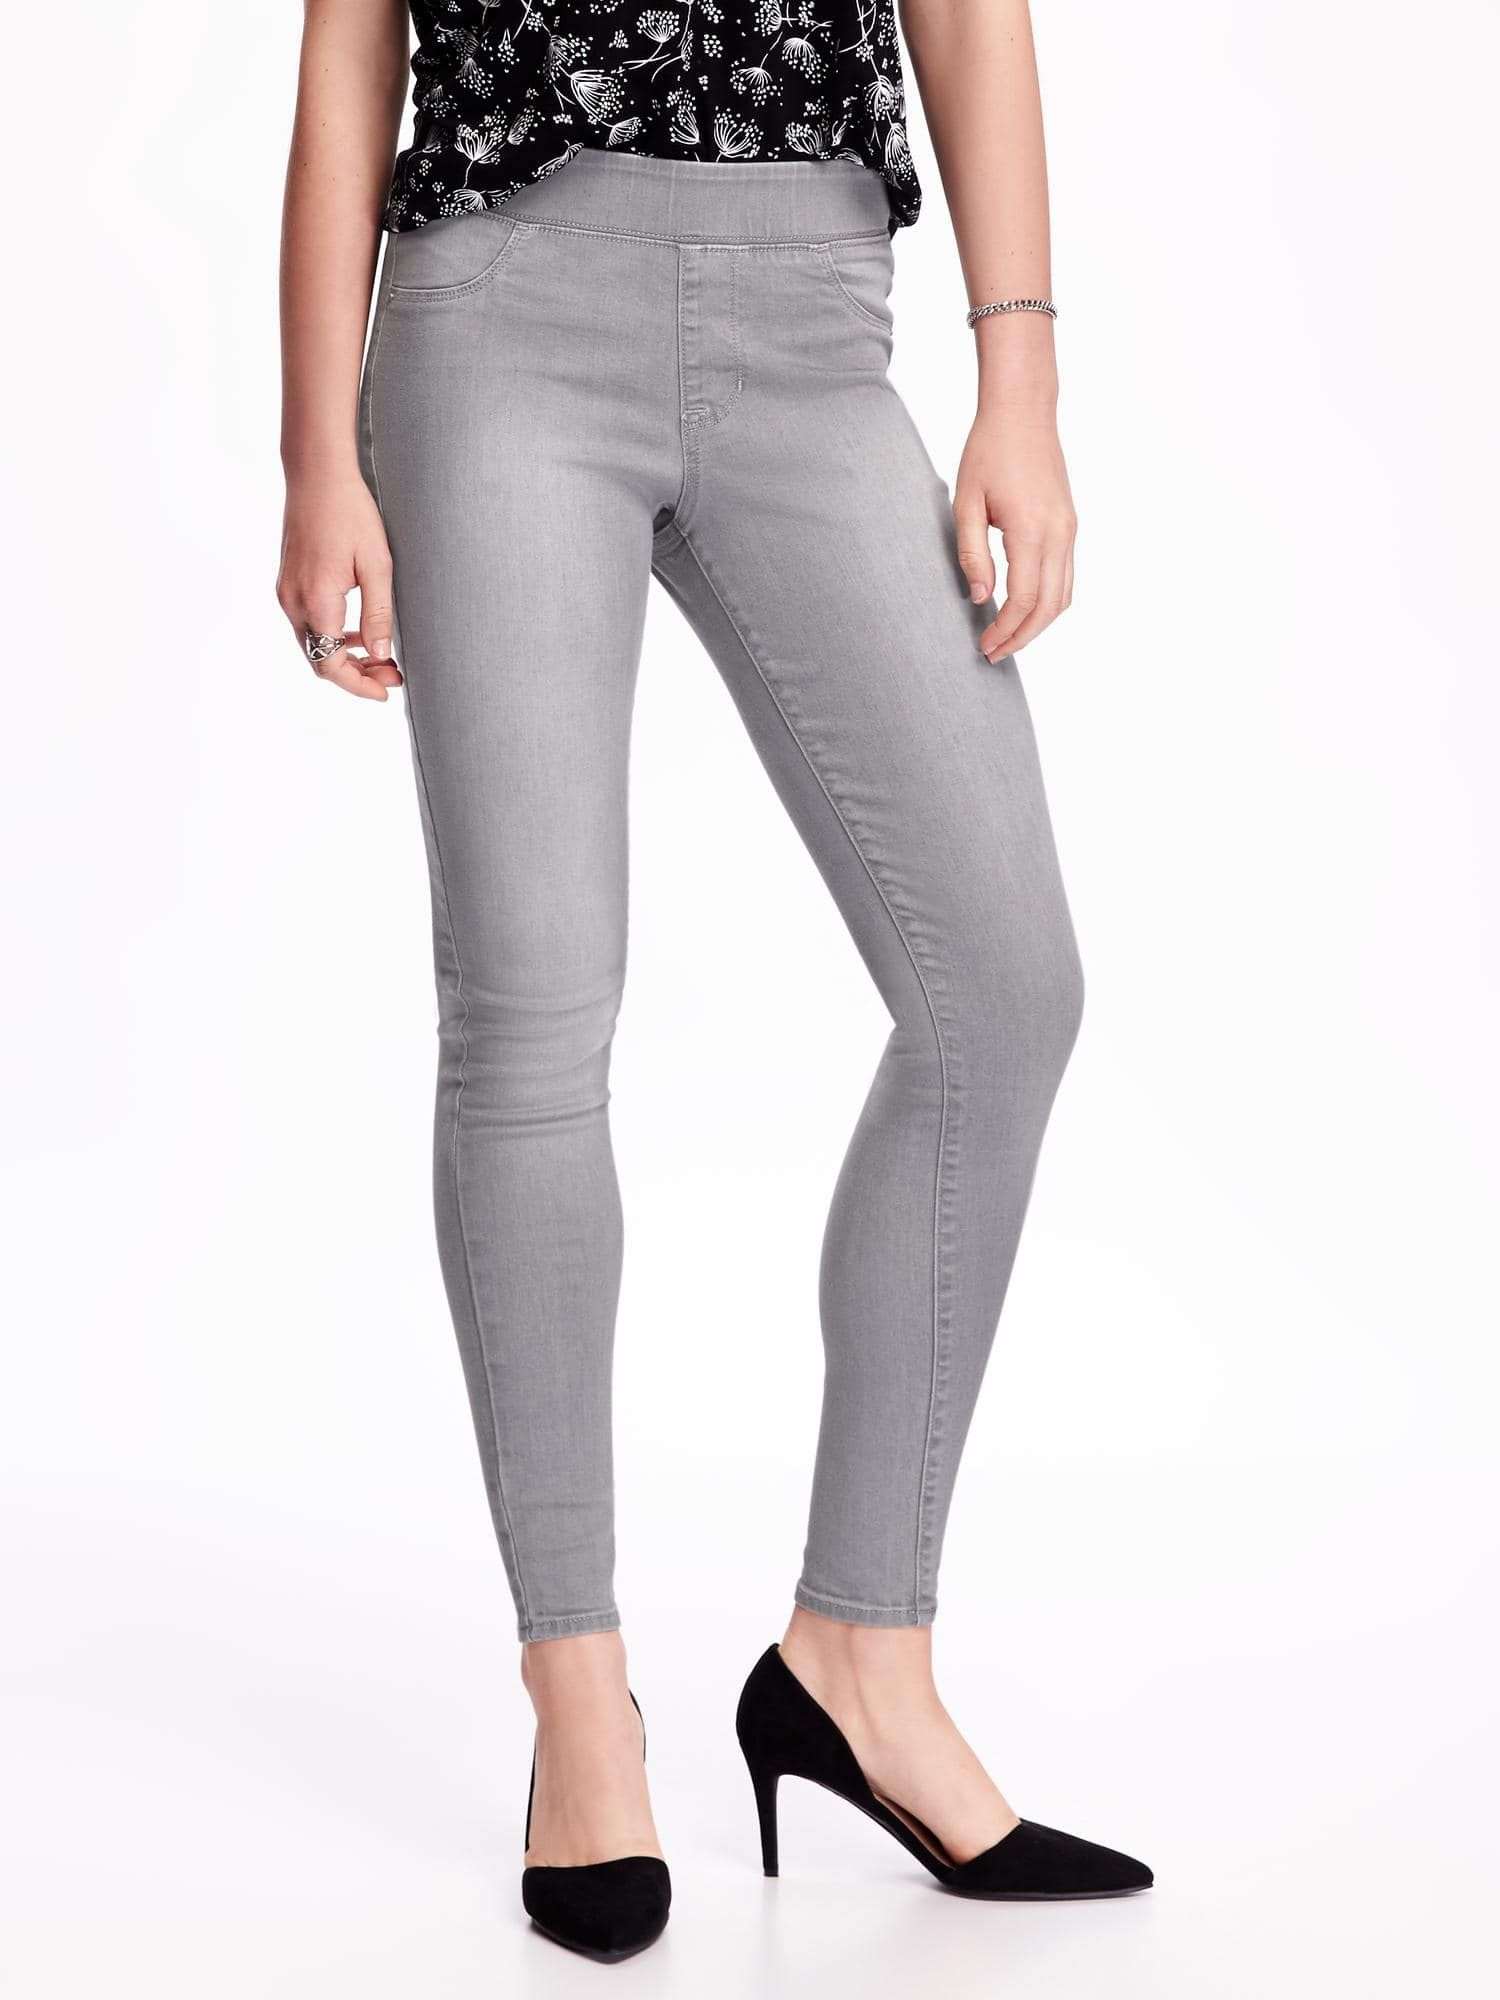 7f50ca494cfad Pull-On Rockstar Jeggings for Women - Old navy in Granite | Things I ...